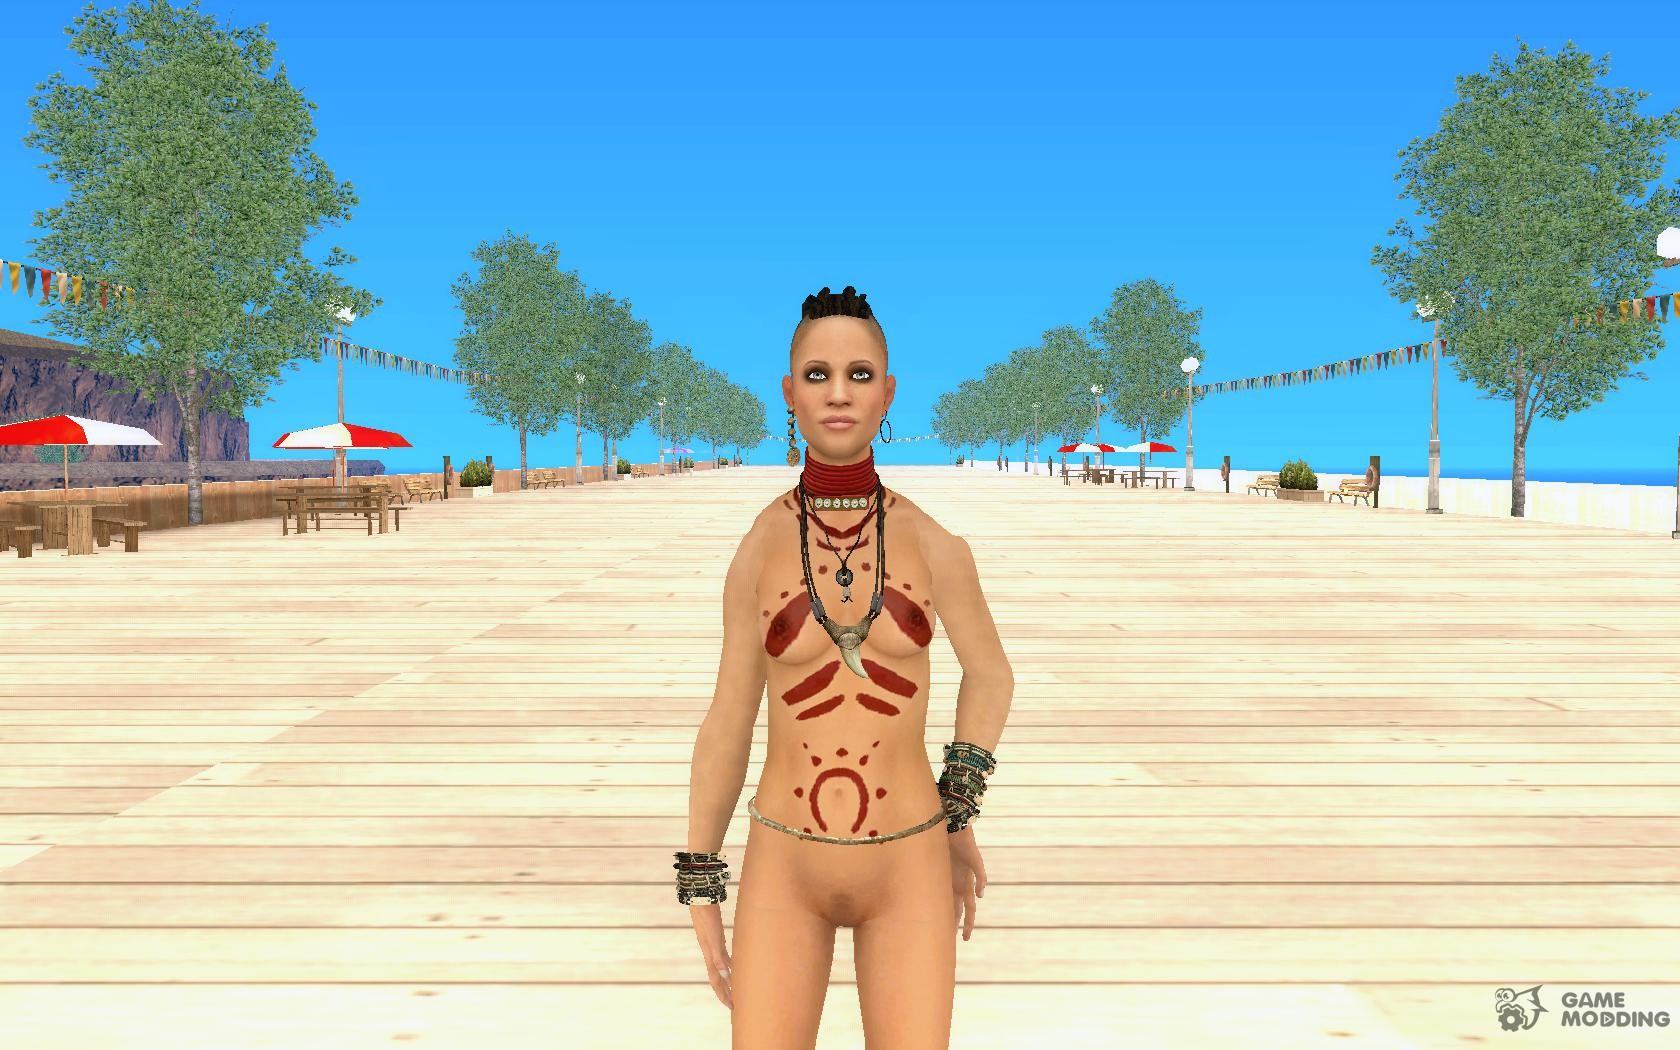 Far cry nude skin mods adult image